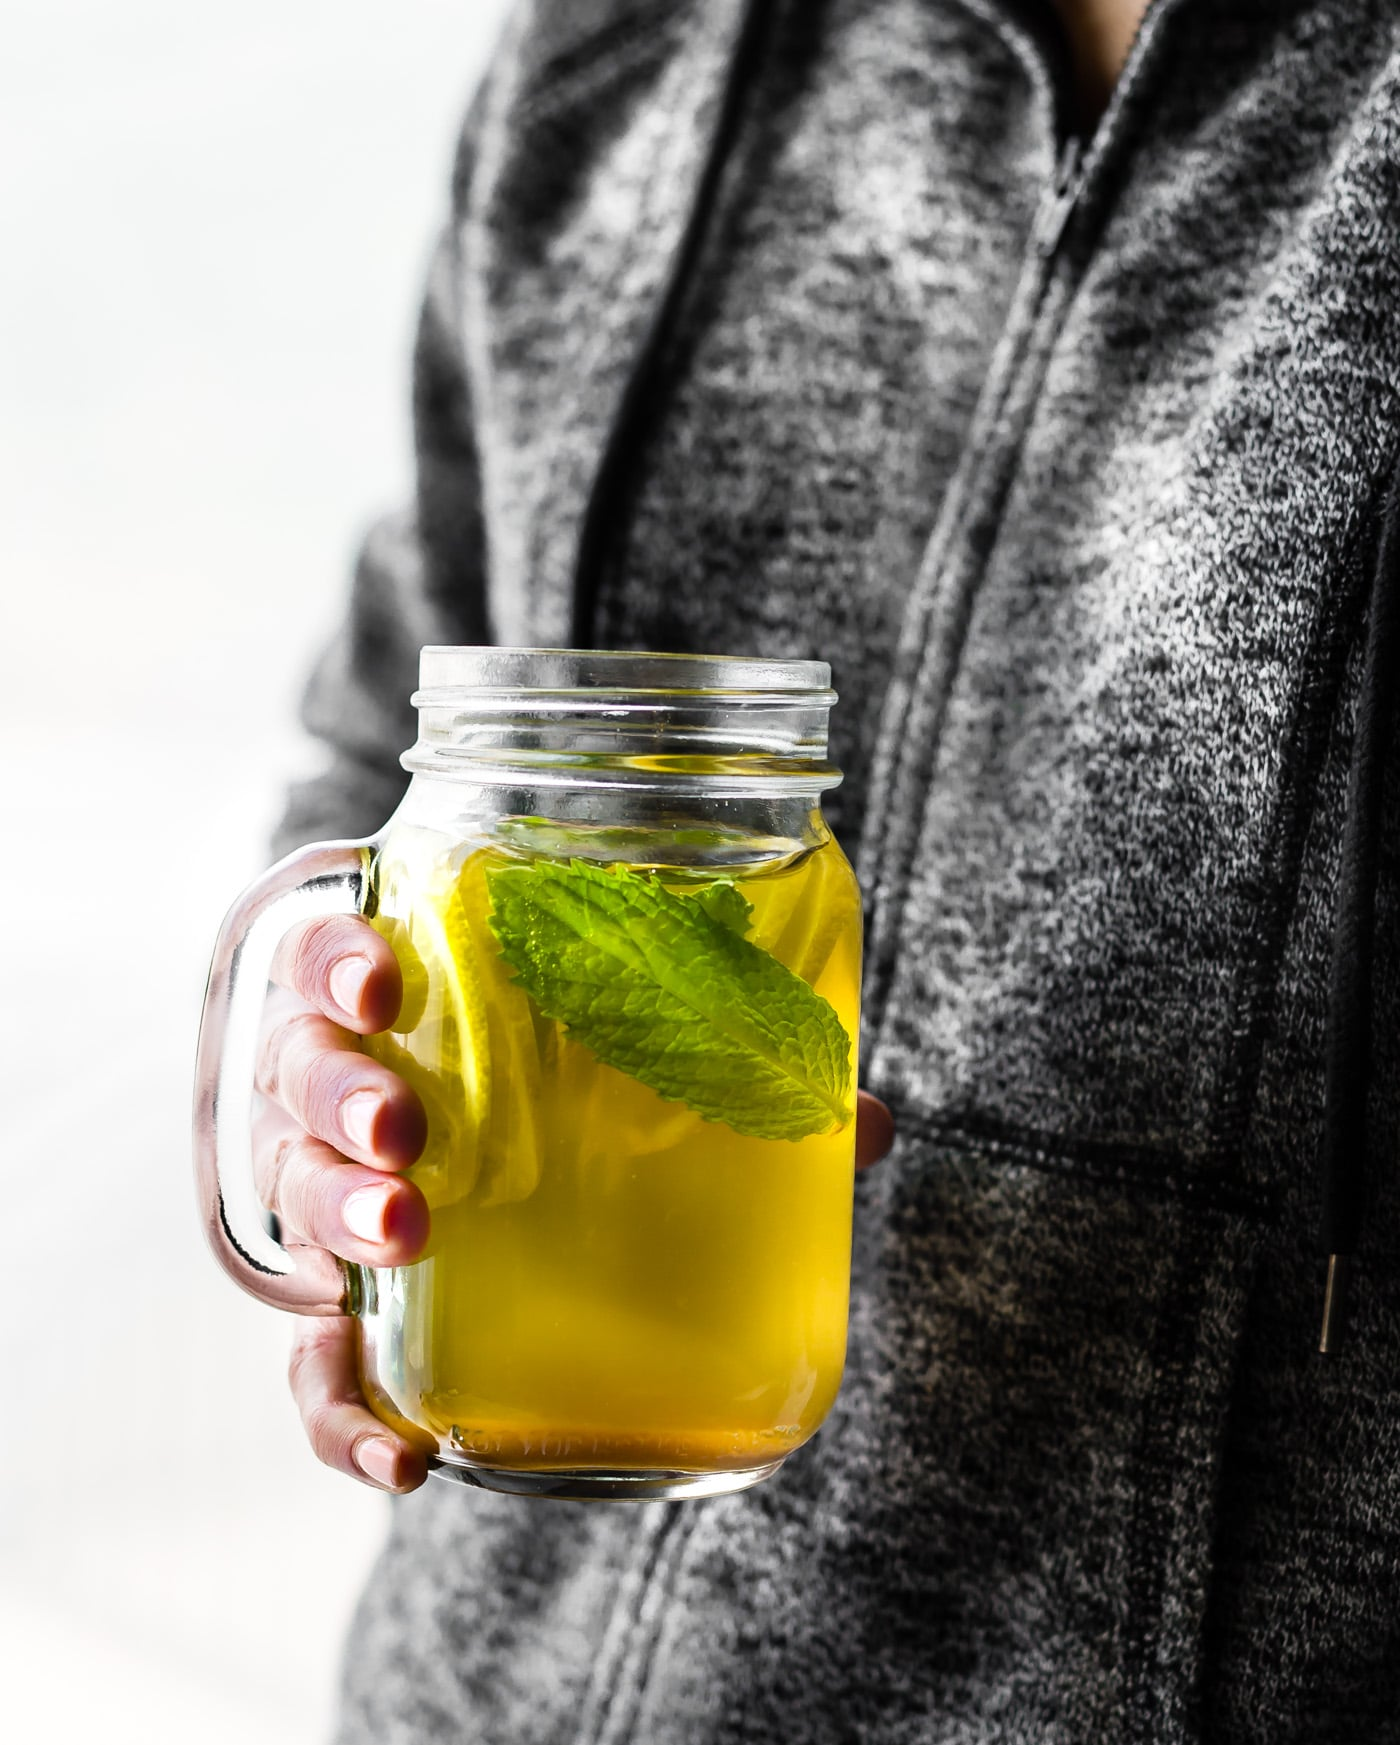 This Turmeric Ginger Lemonade with fresh Mint is great for fighting fatigue and reducing inflammation in the body. It's quick to make, naturally sweetened, and super refreshing! A homemade lemonade with a hint of spice, tartness, and Zing! Vegan, paleo, and AMAZING!